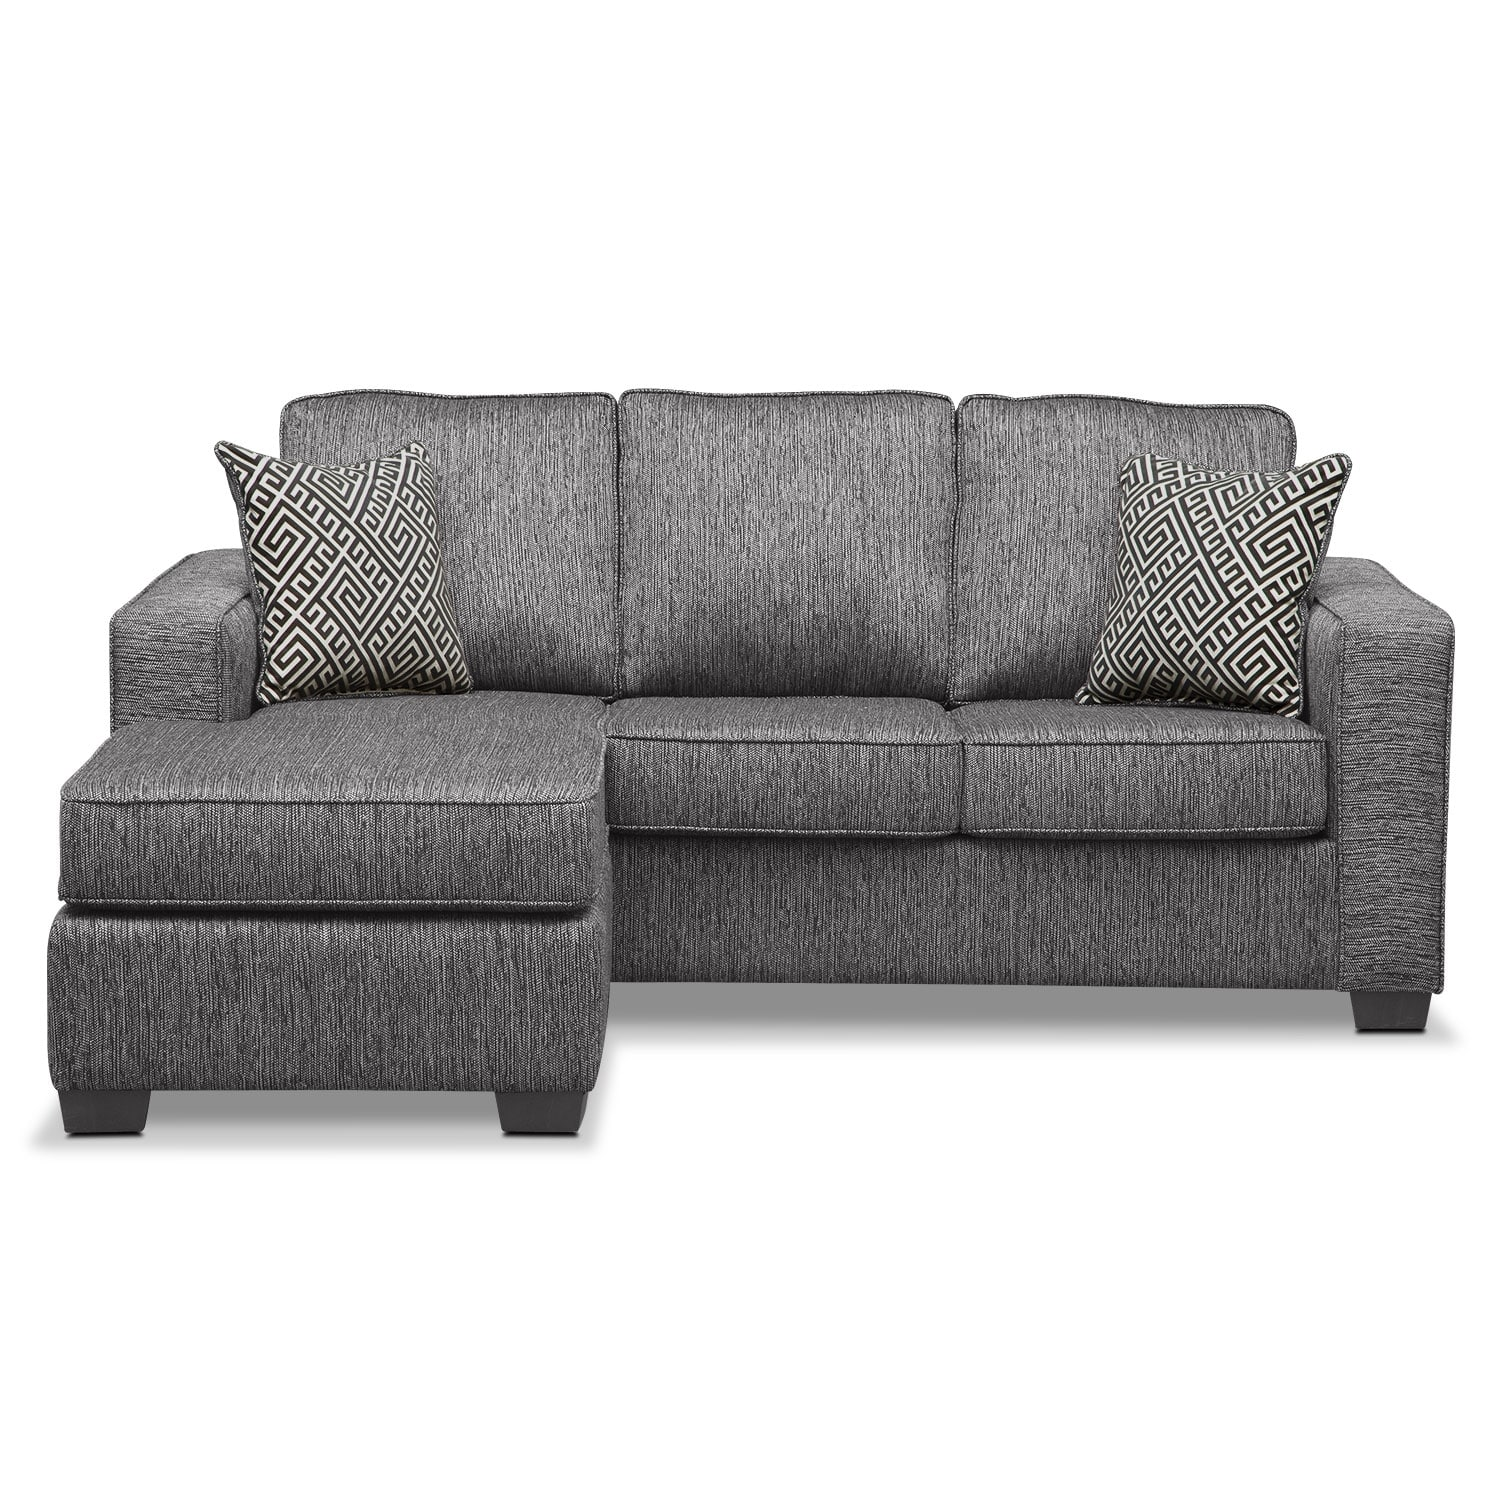 Sterling Innerspring Sleeper Sofa with Chaise Charcoal